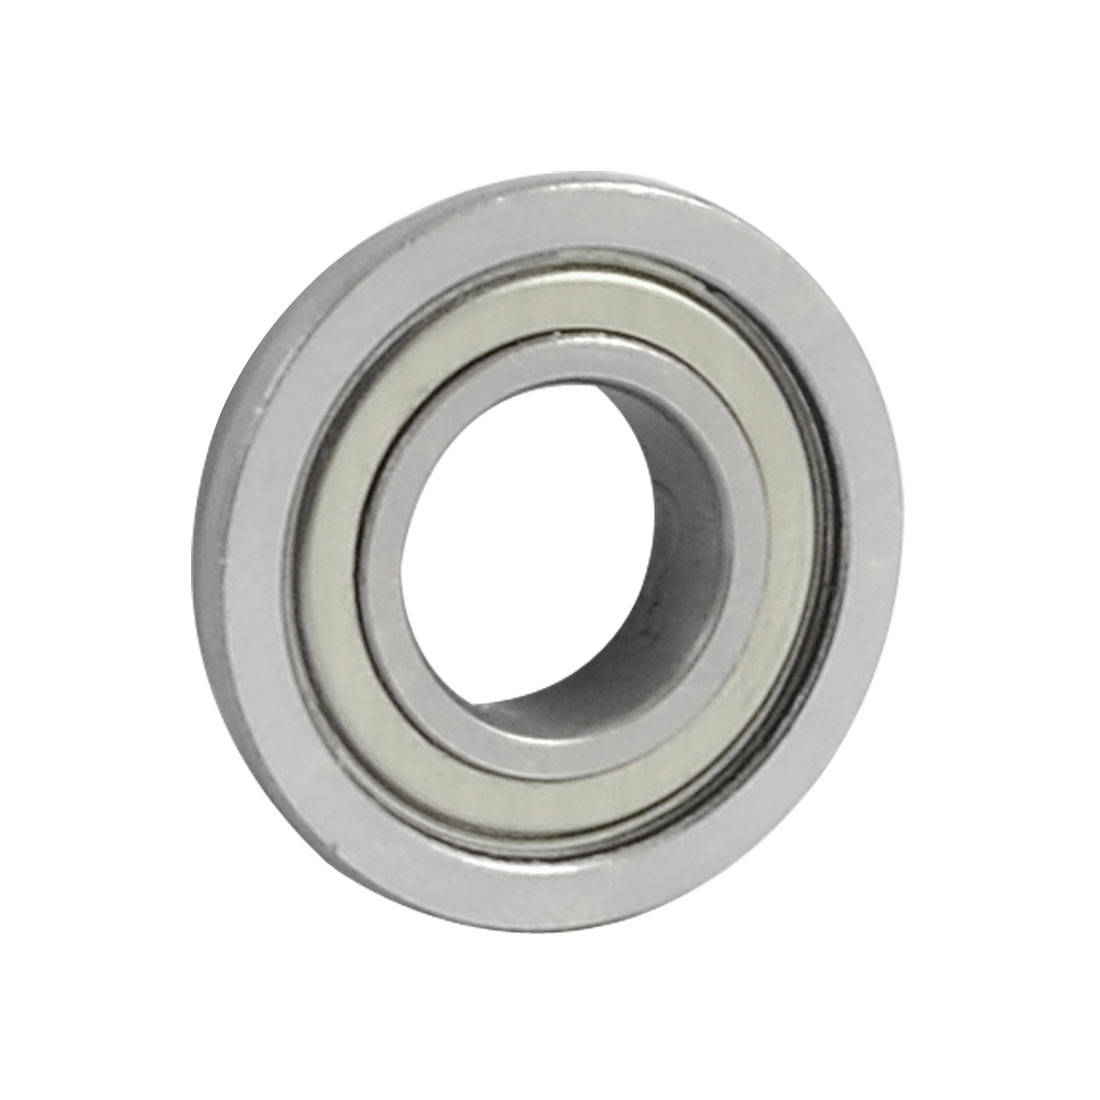 24mm x 12mm x 6mm Silver Tone Radial Shielded Deep Groove Flanged Ball Bearing